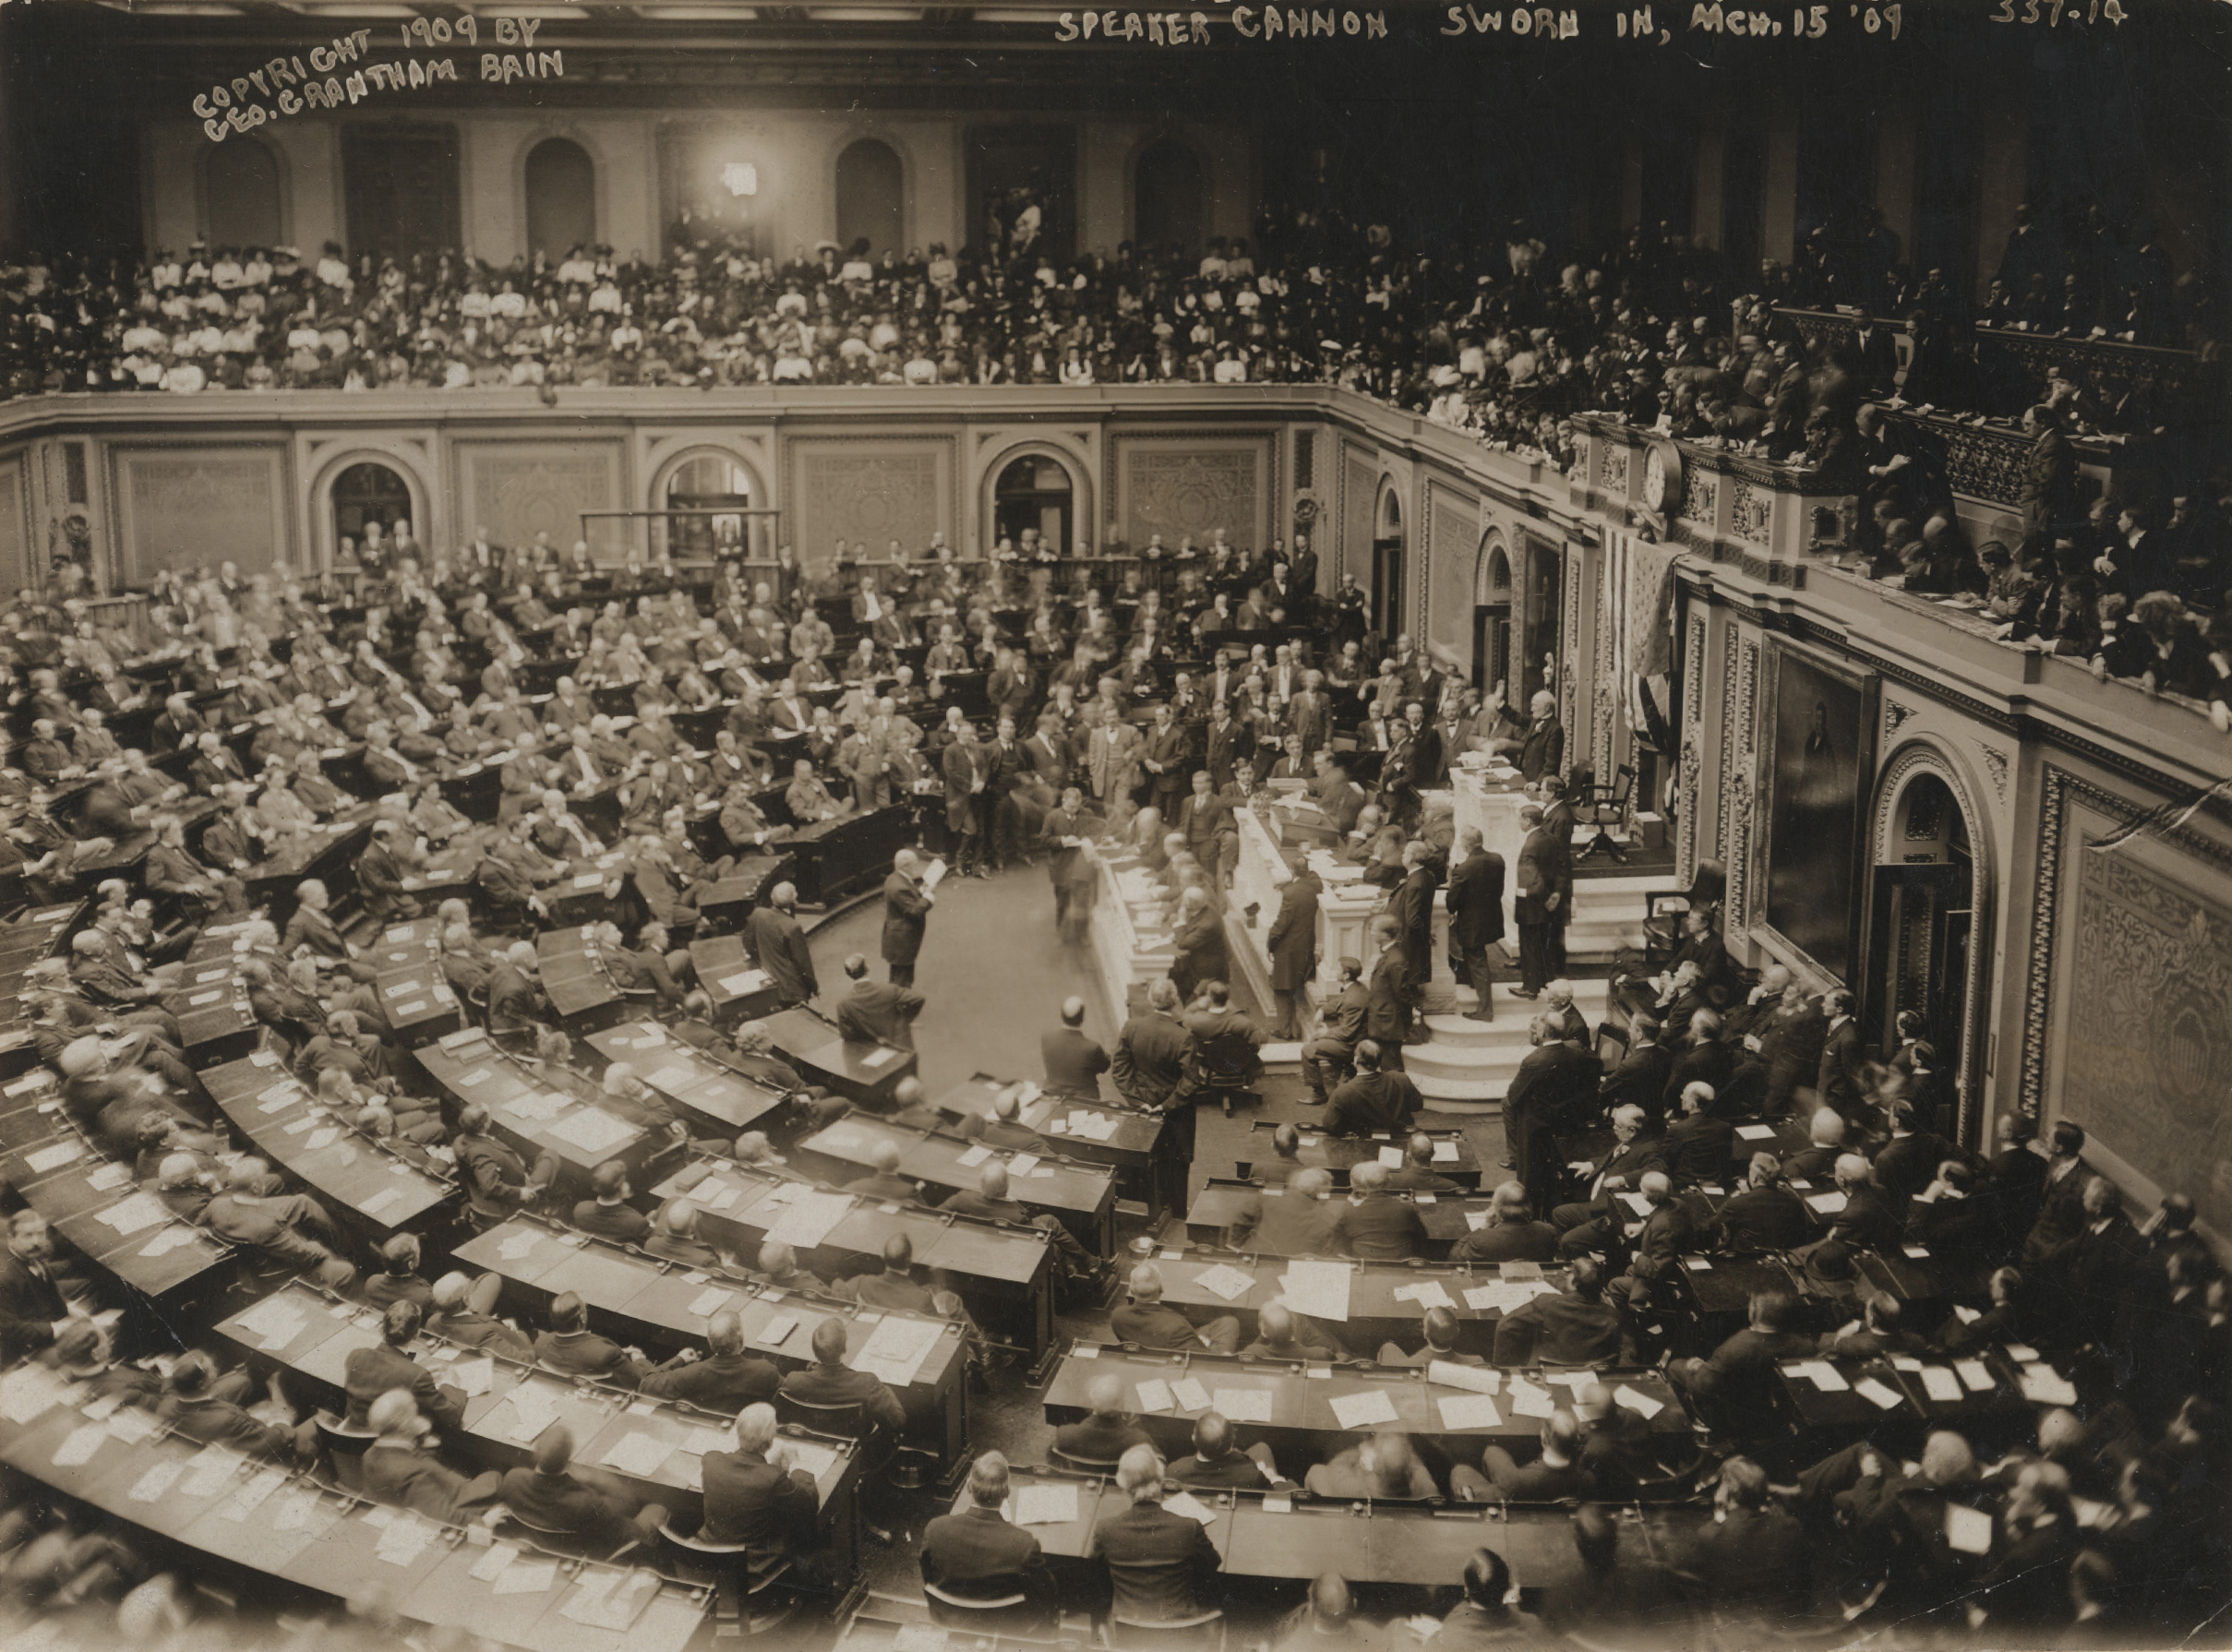 Oath of Office | US House of Representatives: History, Art